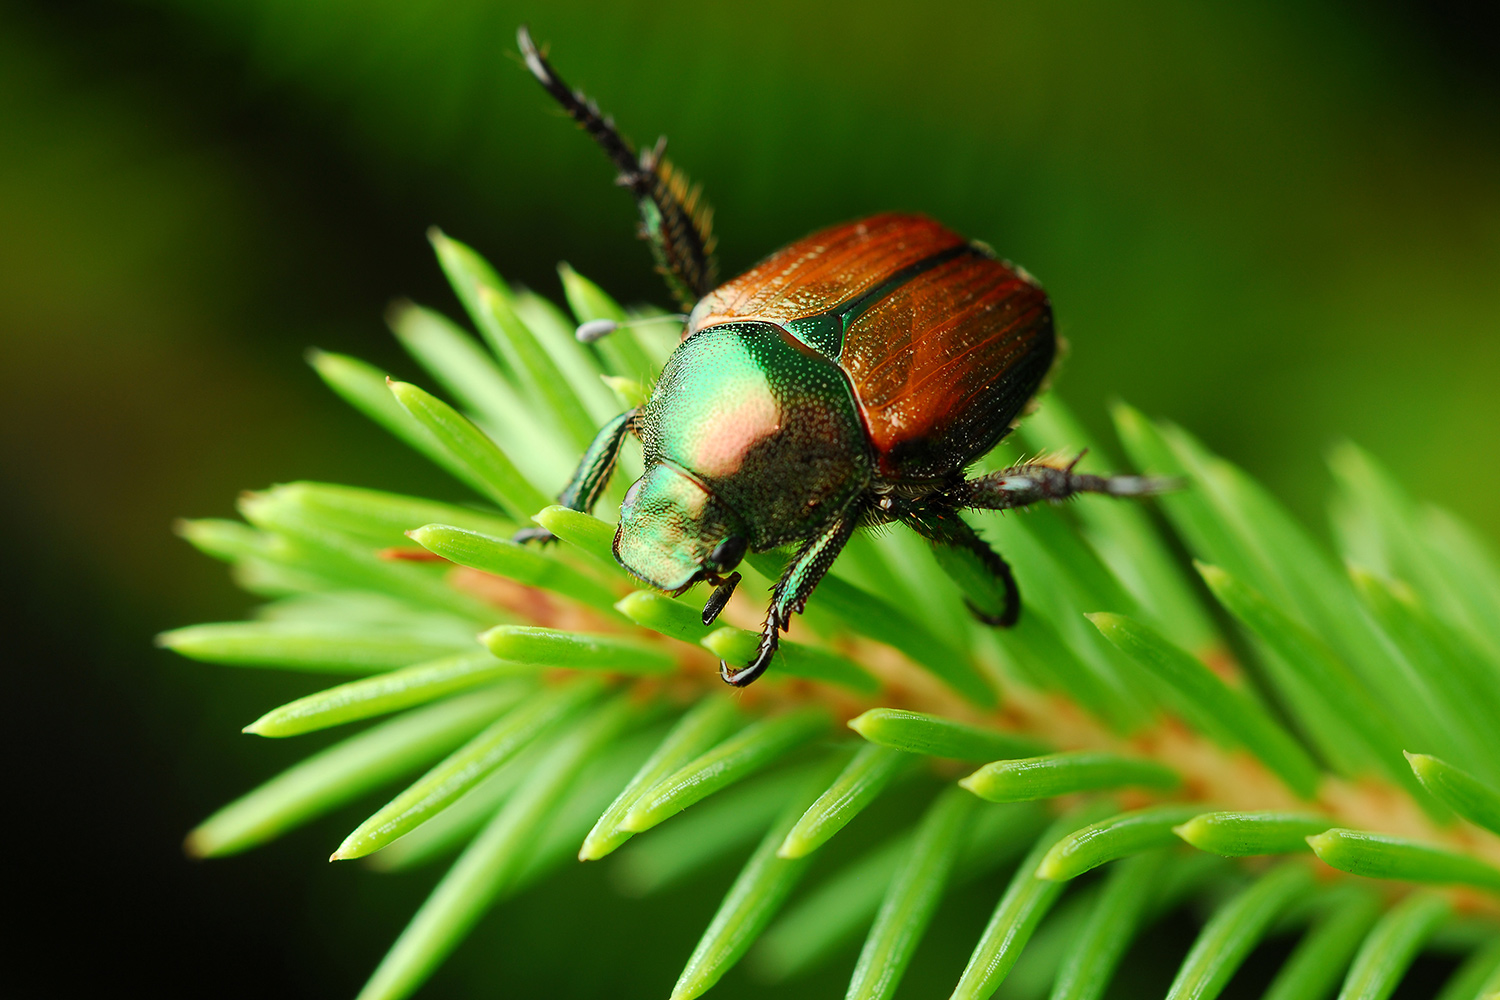 japanese beetle on plant